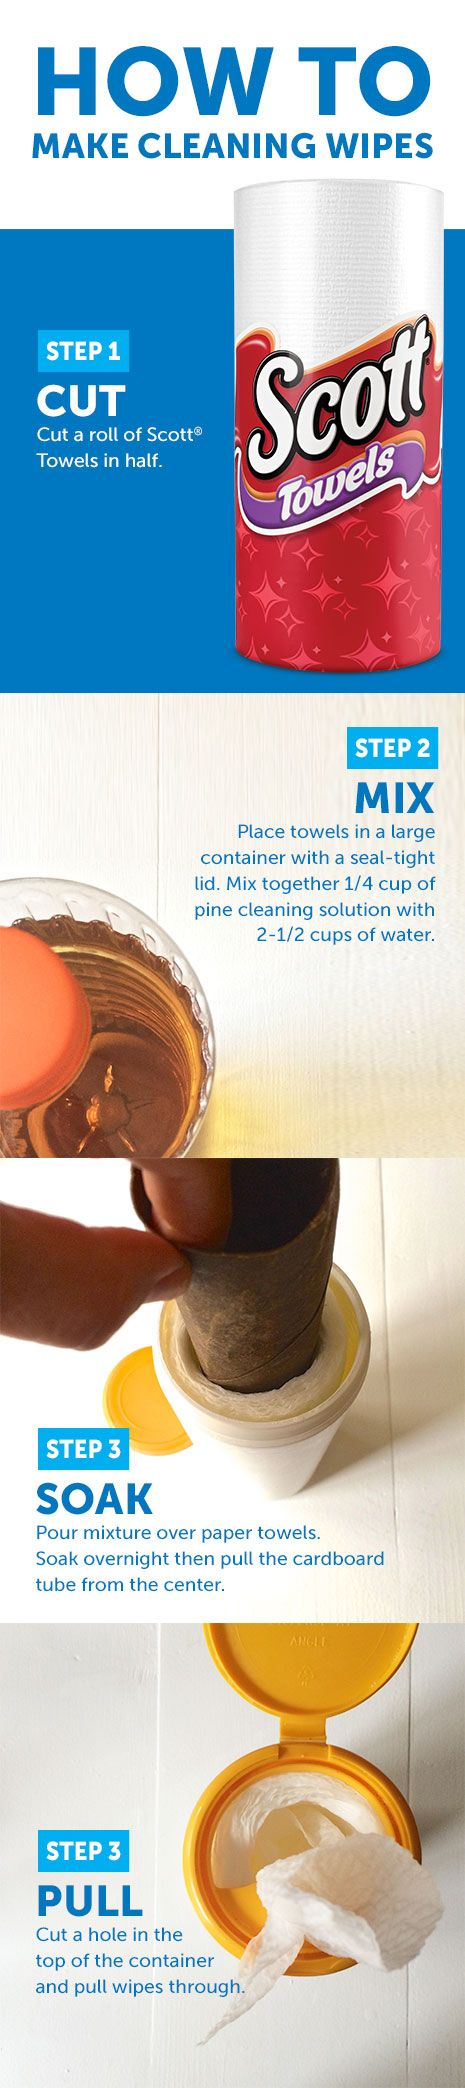 how to make your own disinfectant